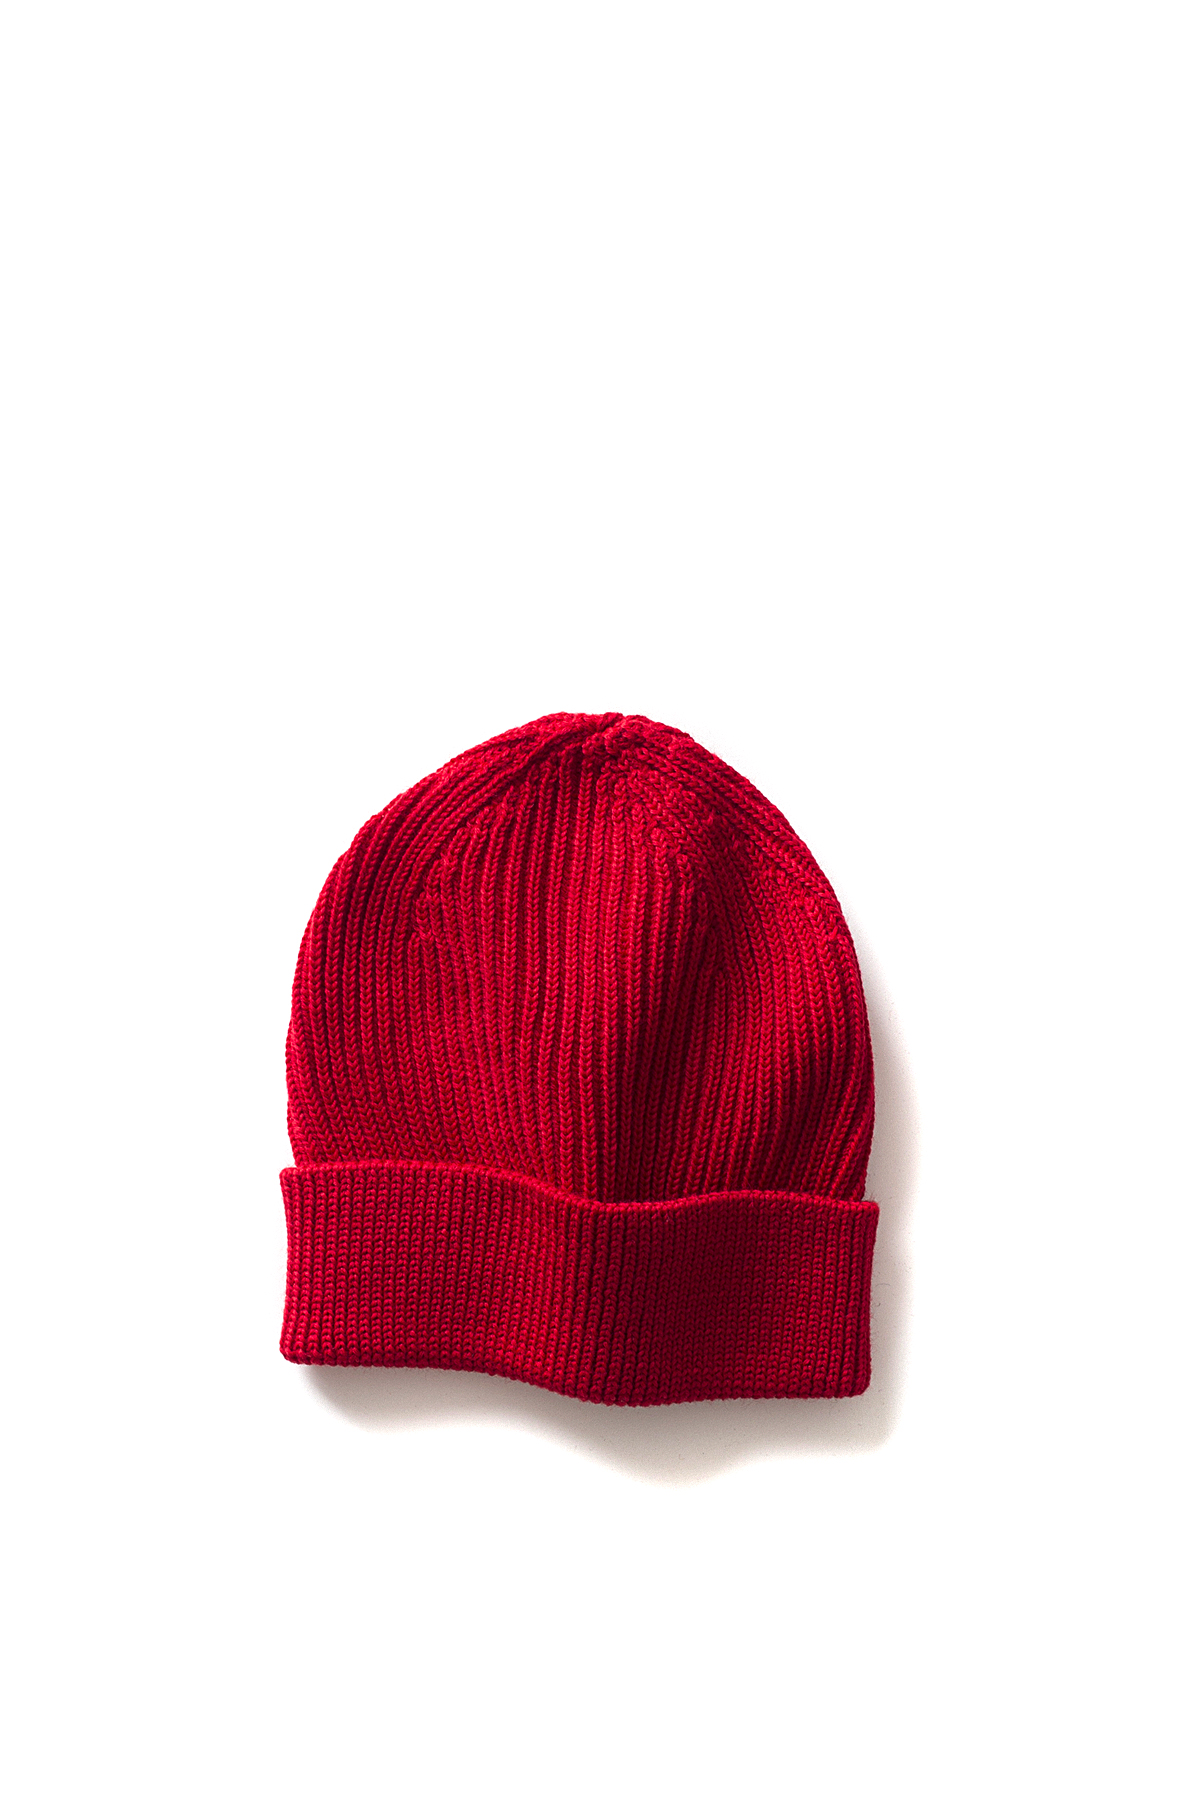 Andersen-Andersen : Beanie Long Knitted Hat (Red)